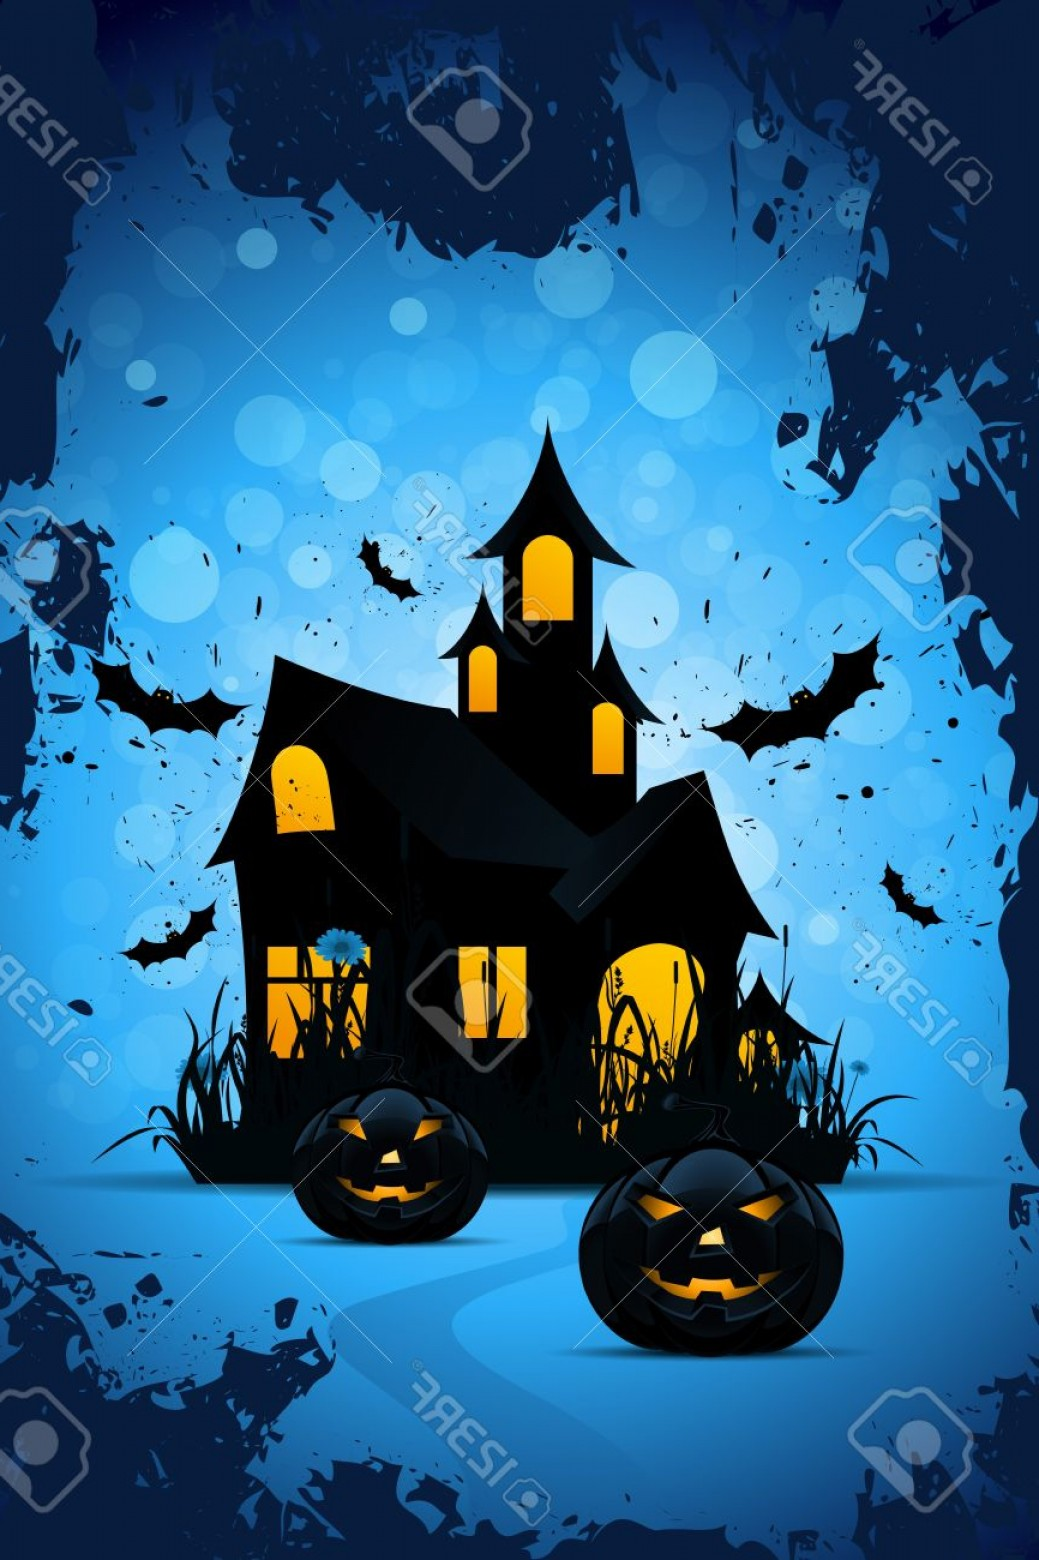 Halloween Haunted House Silhouette Vector: Photohalloween Background With Bats Pumpkins And Haunted House